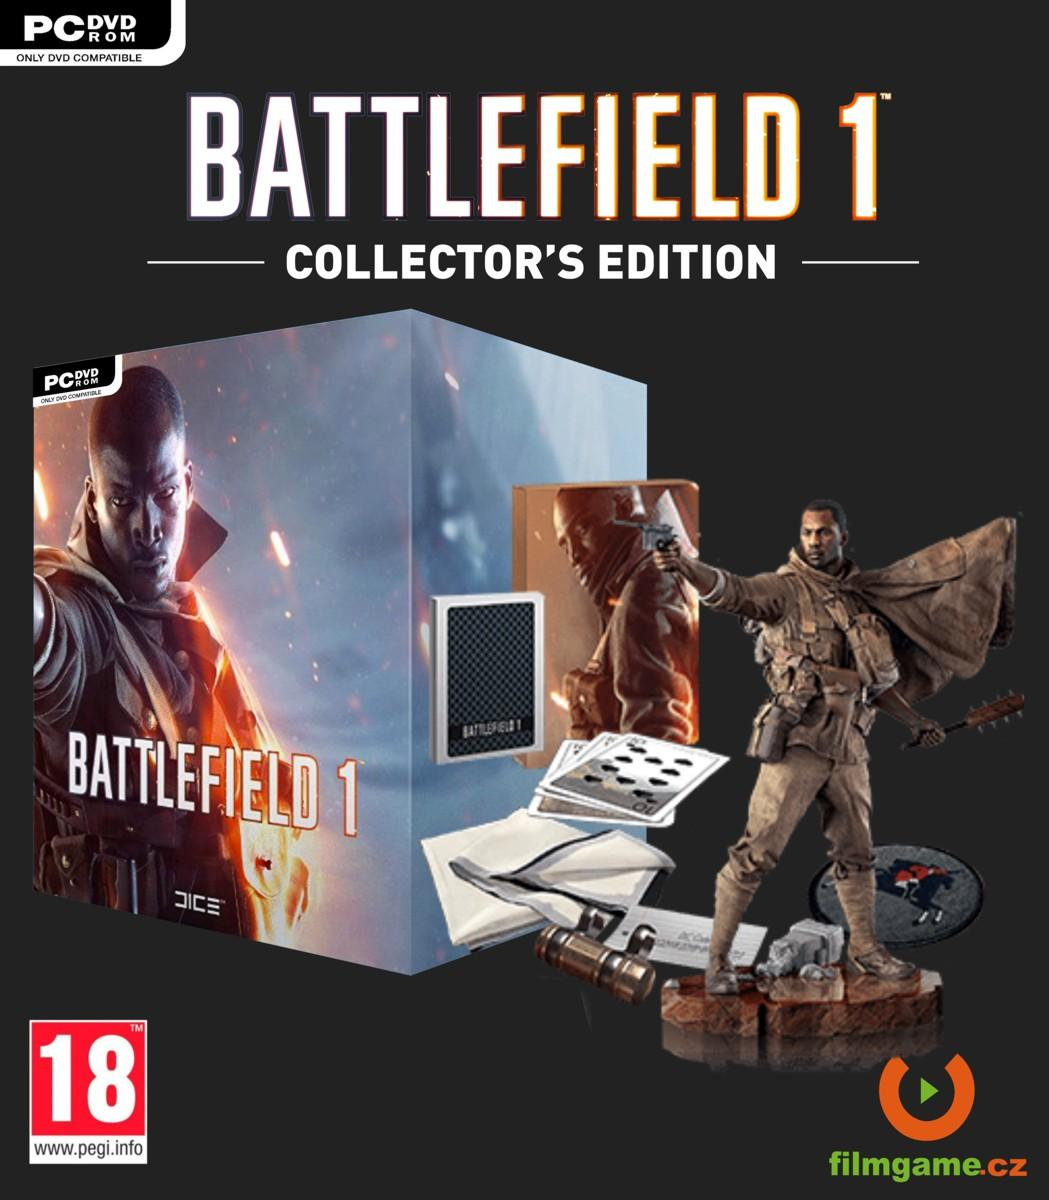 BATTLEFIELD 1 COLLECTOR'S EDITION - PC